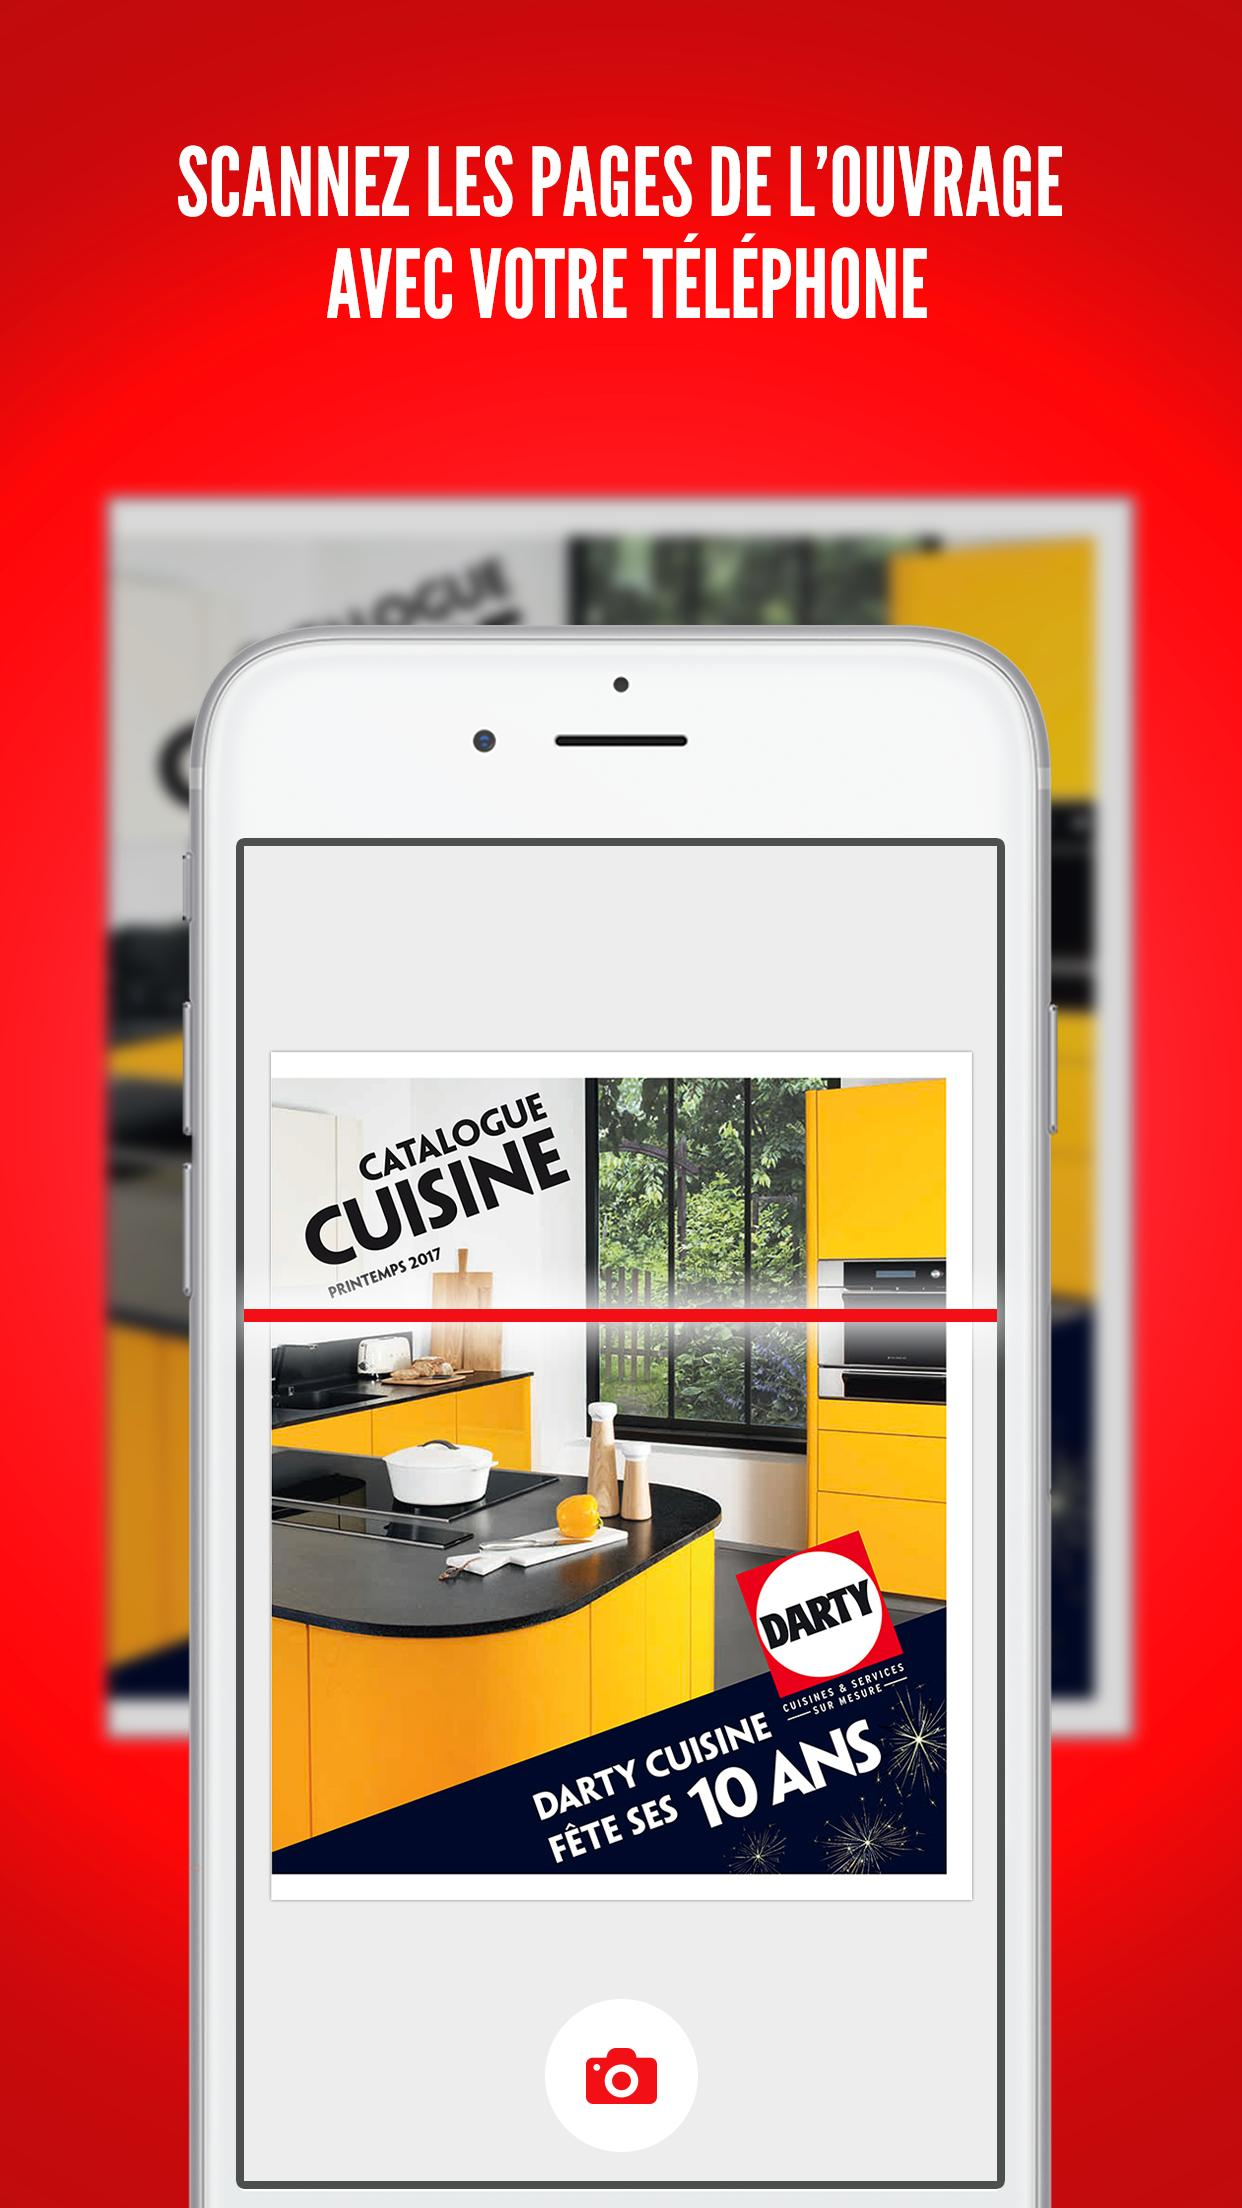 Darty Cuisine Sur Mesure dartyscan for android - apk download